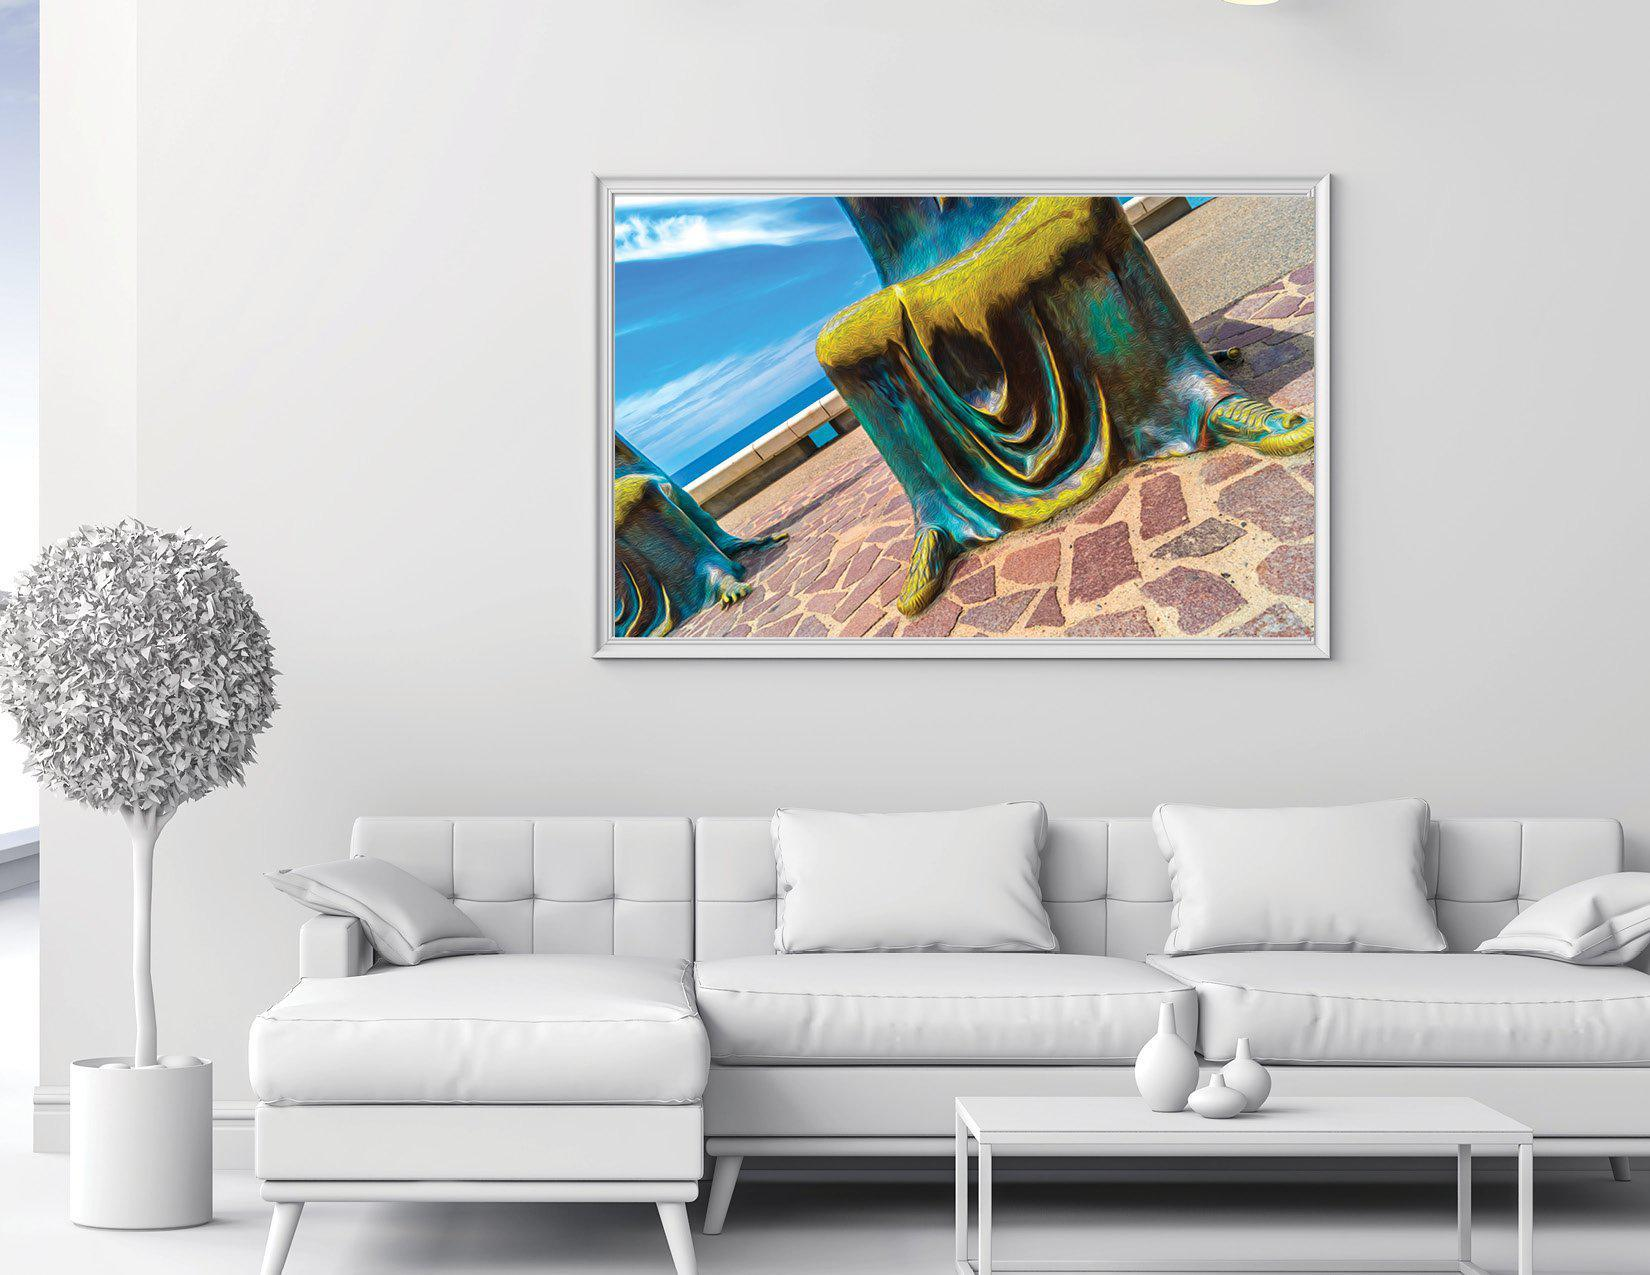 Walk On The Malecon - New Chucks - Single Edition Large Photography Print - Yvette Michele Art